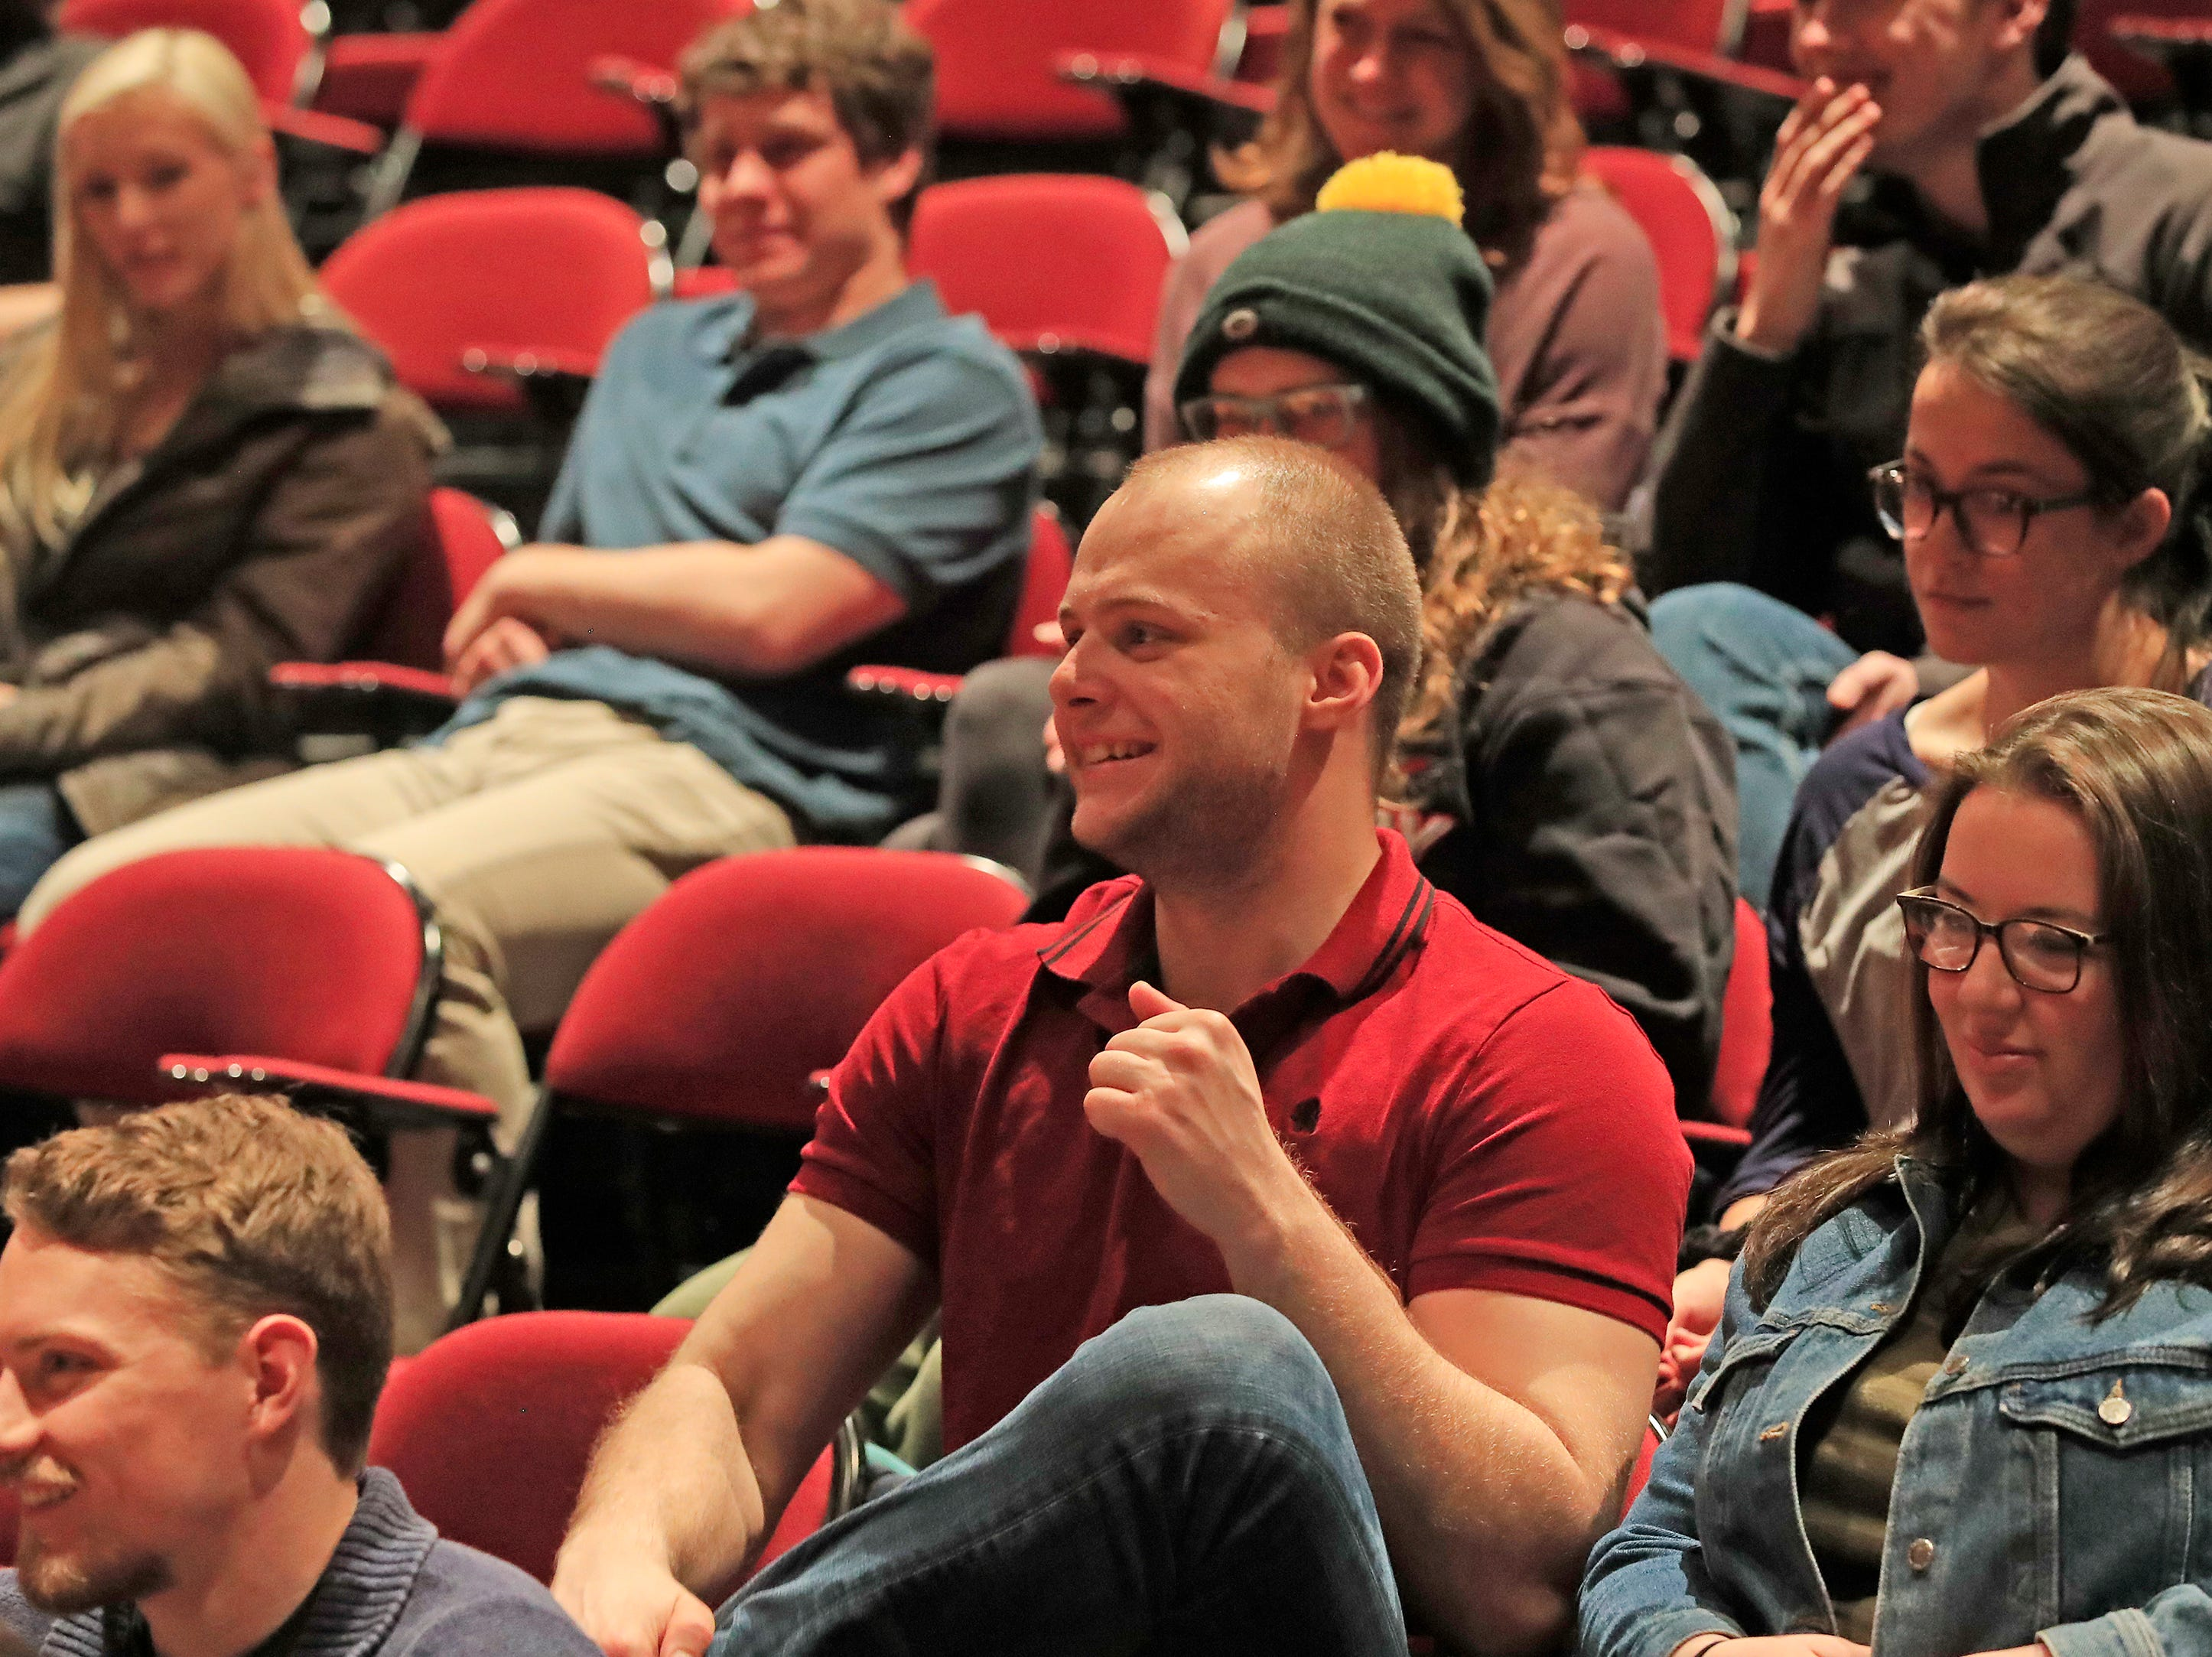 Students listen to discussion between national political consultants Karl Rove and David Axelrod during a Q&A session event at UW-Green Bay on Wednesday, April 3, 2019 in Green Bay, Wis.